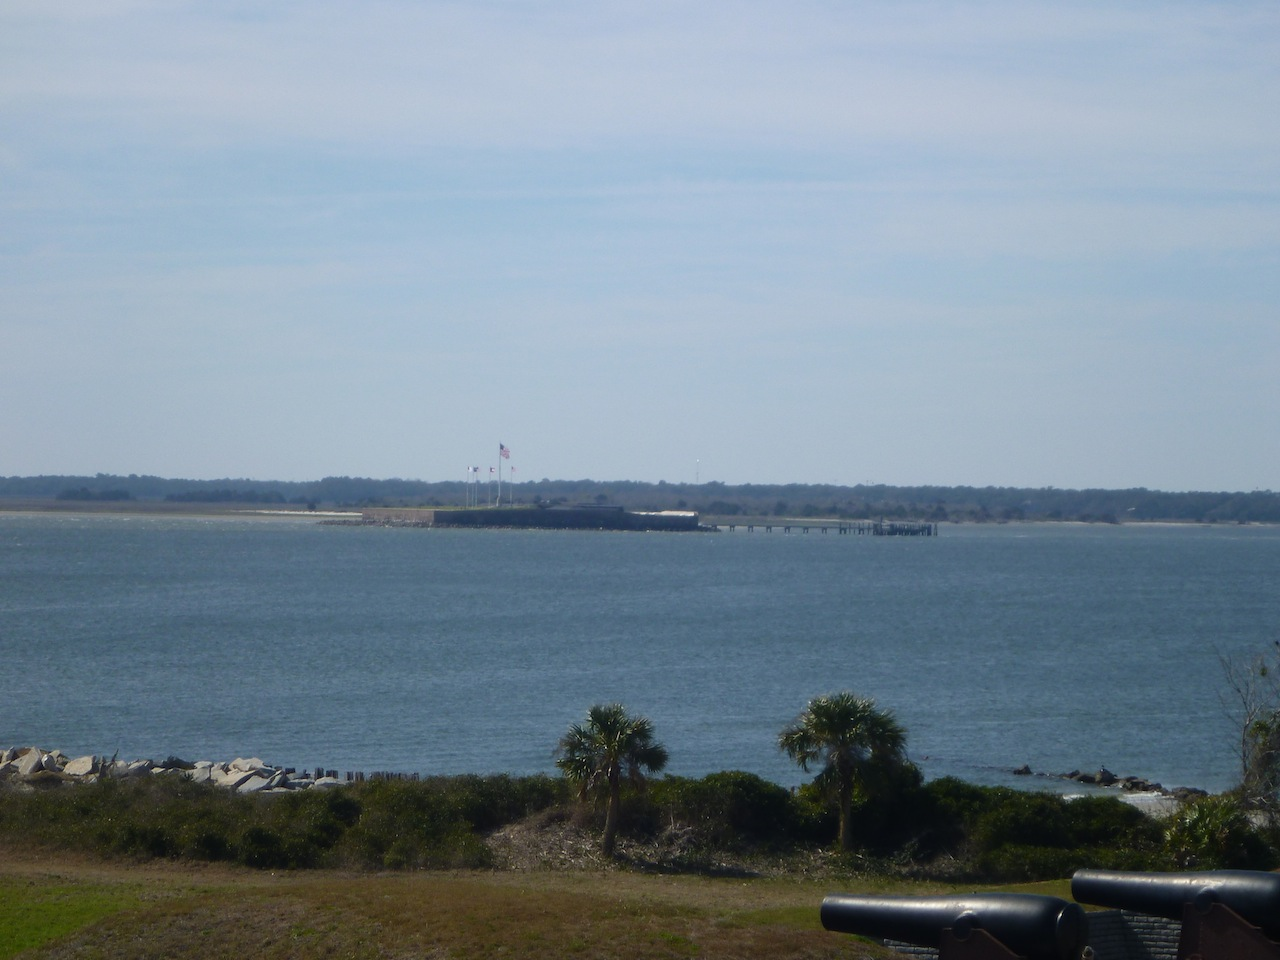 Fort Sumter Across The Water